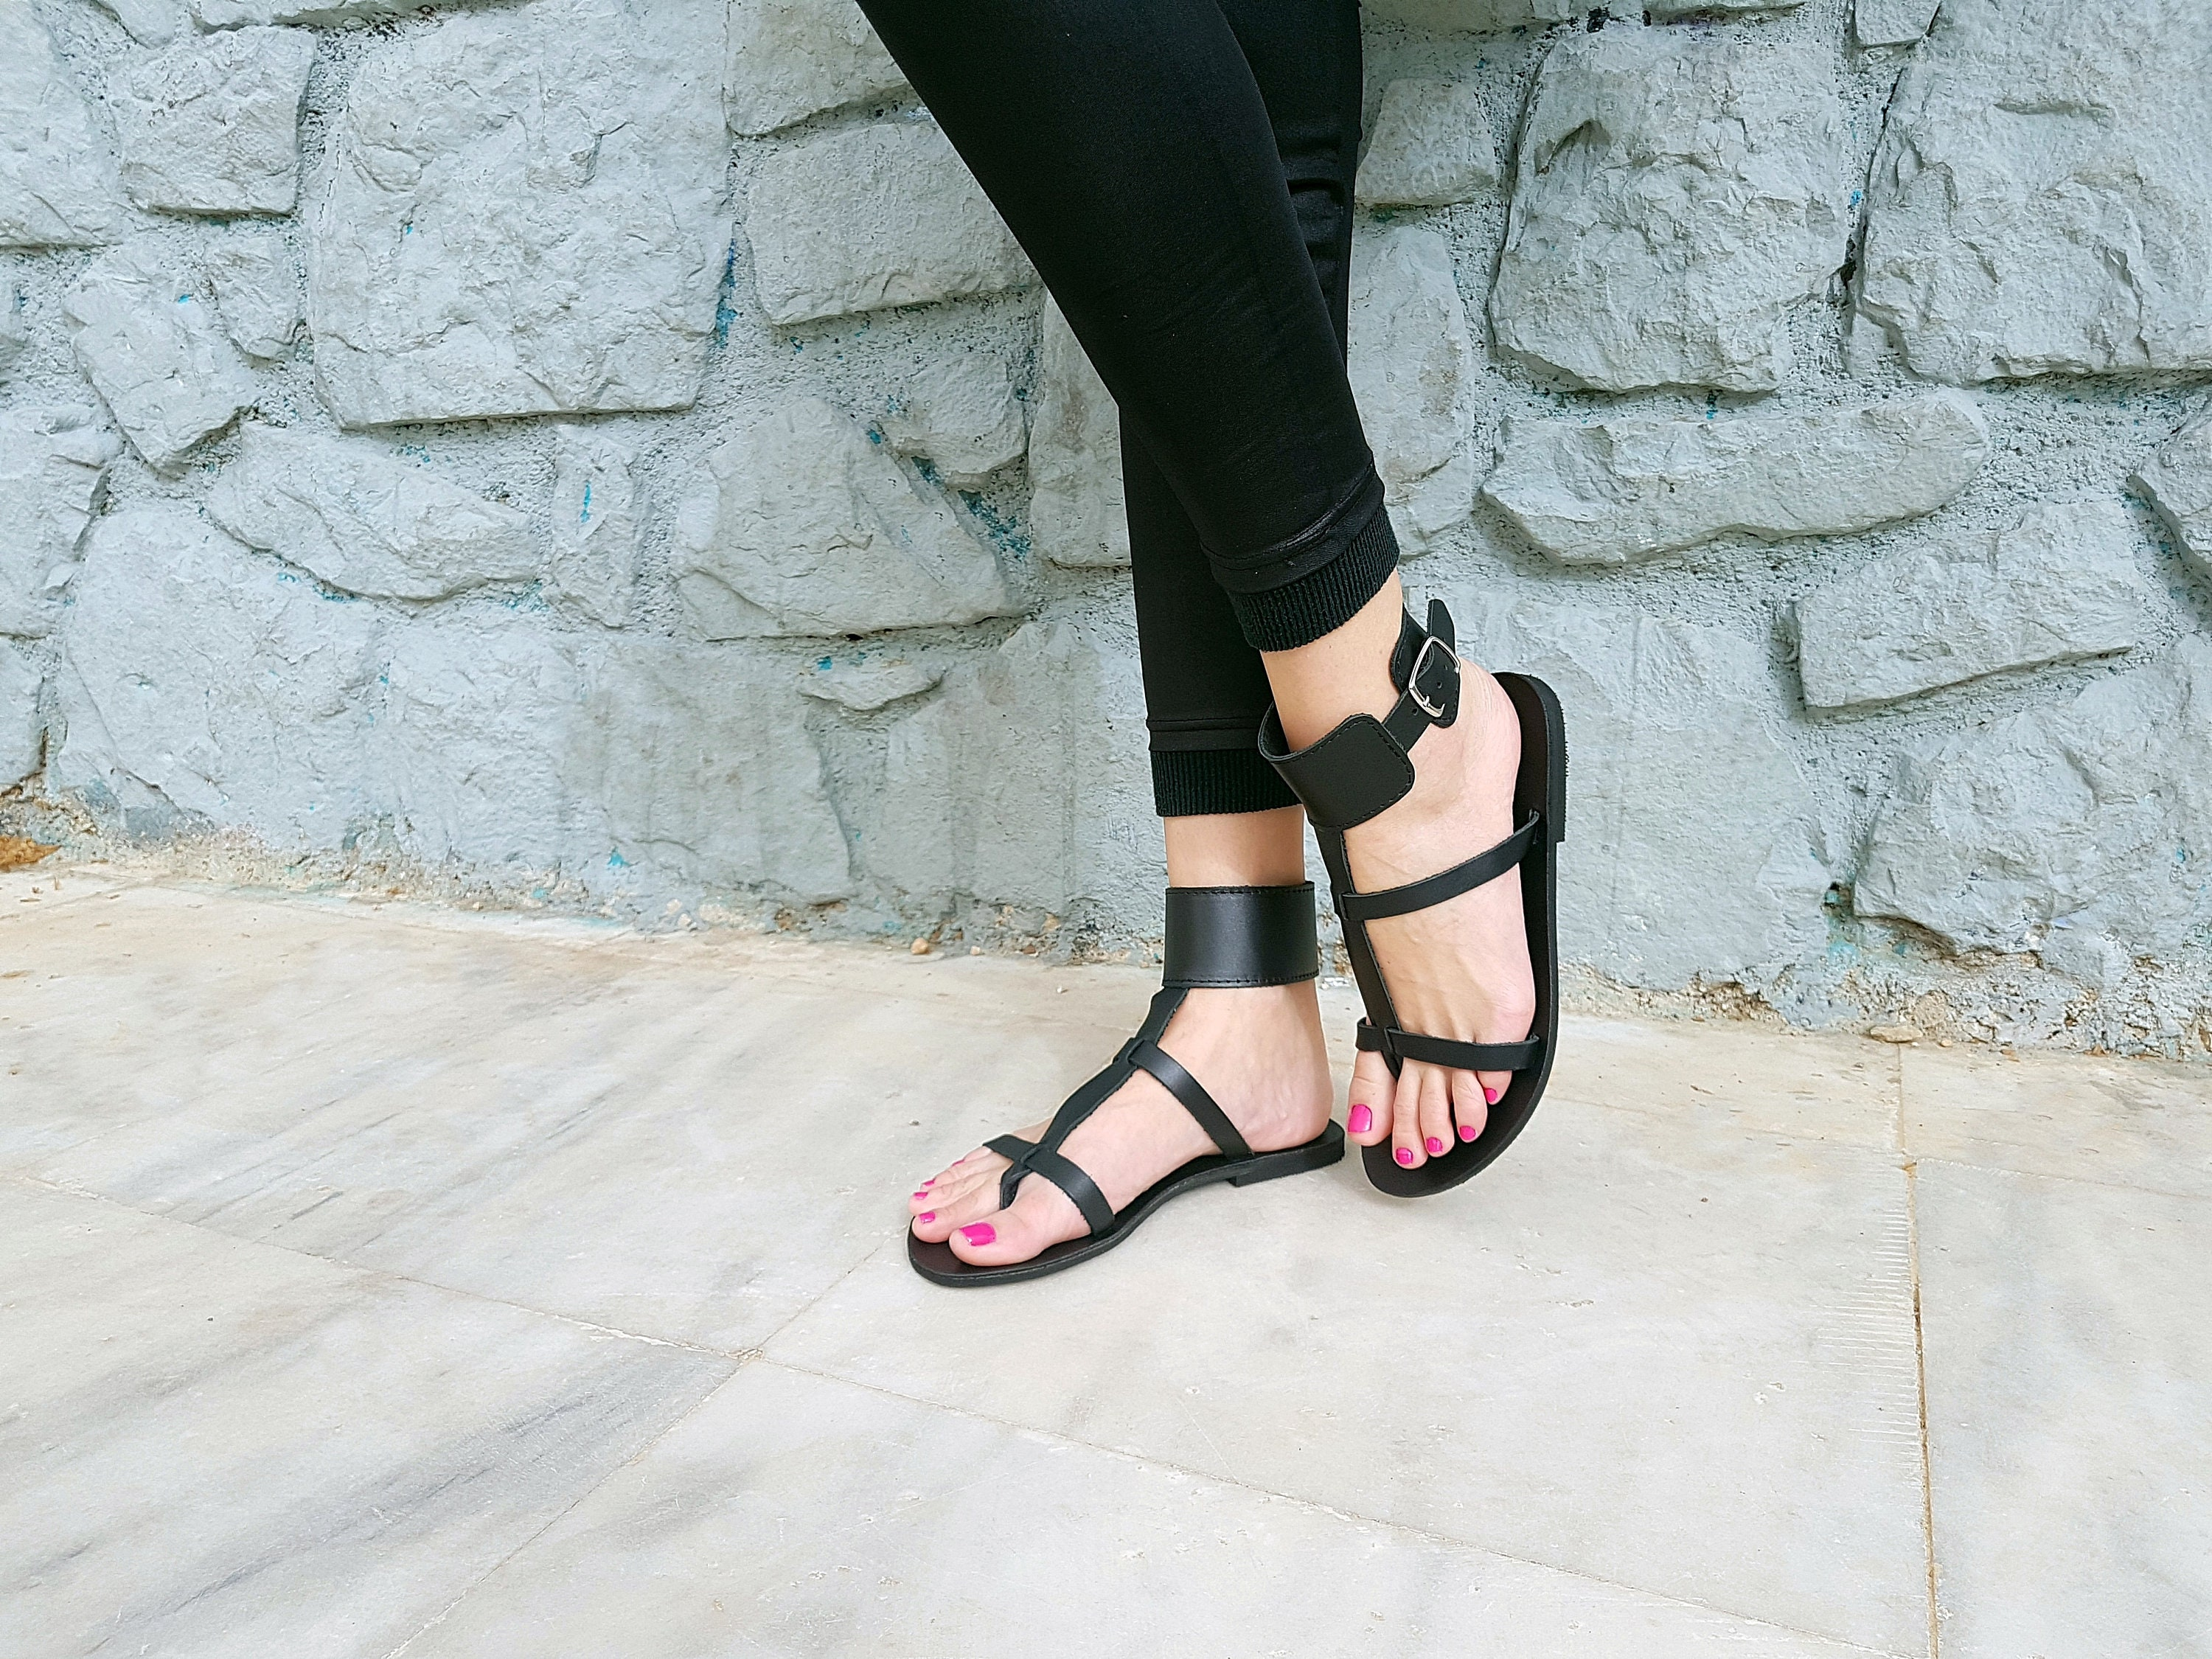 89186e33a86 Ankle Cuff Sandals Black Gladiator Sandals Flat Leather